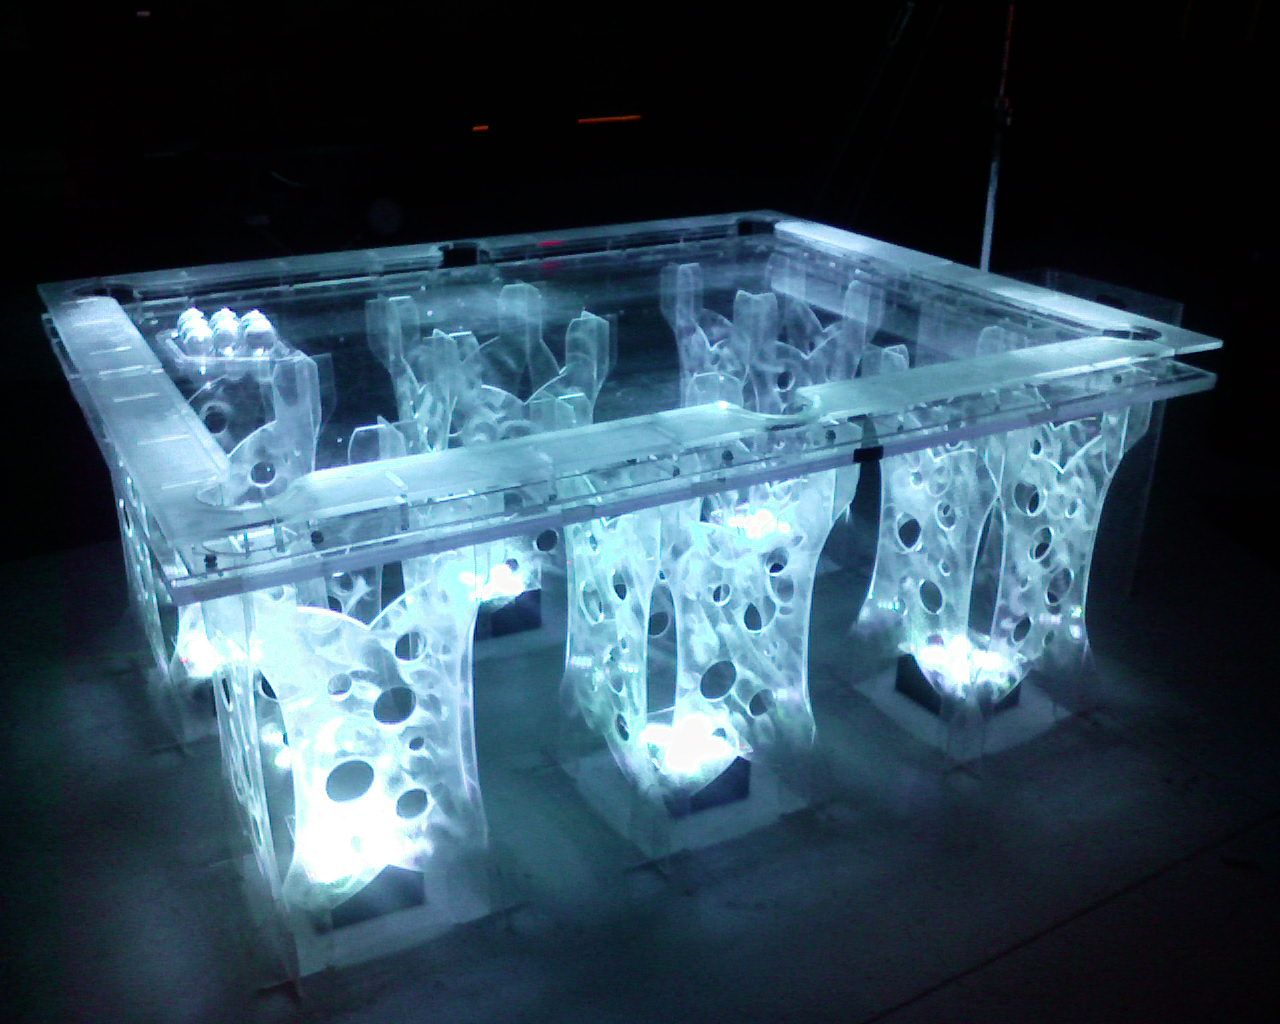 Fish tank pool table - Amazing Pool Tables Acrylic Buffet Table And Serpentine Table